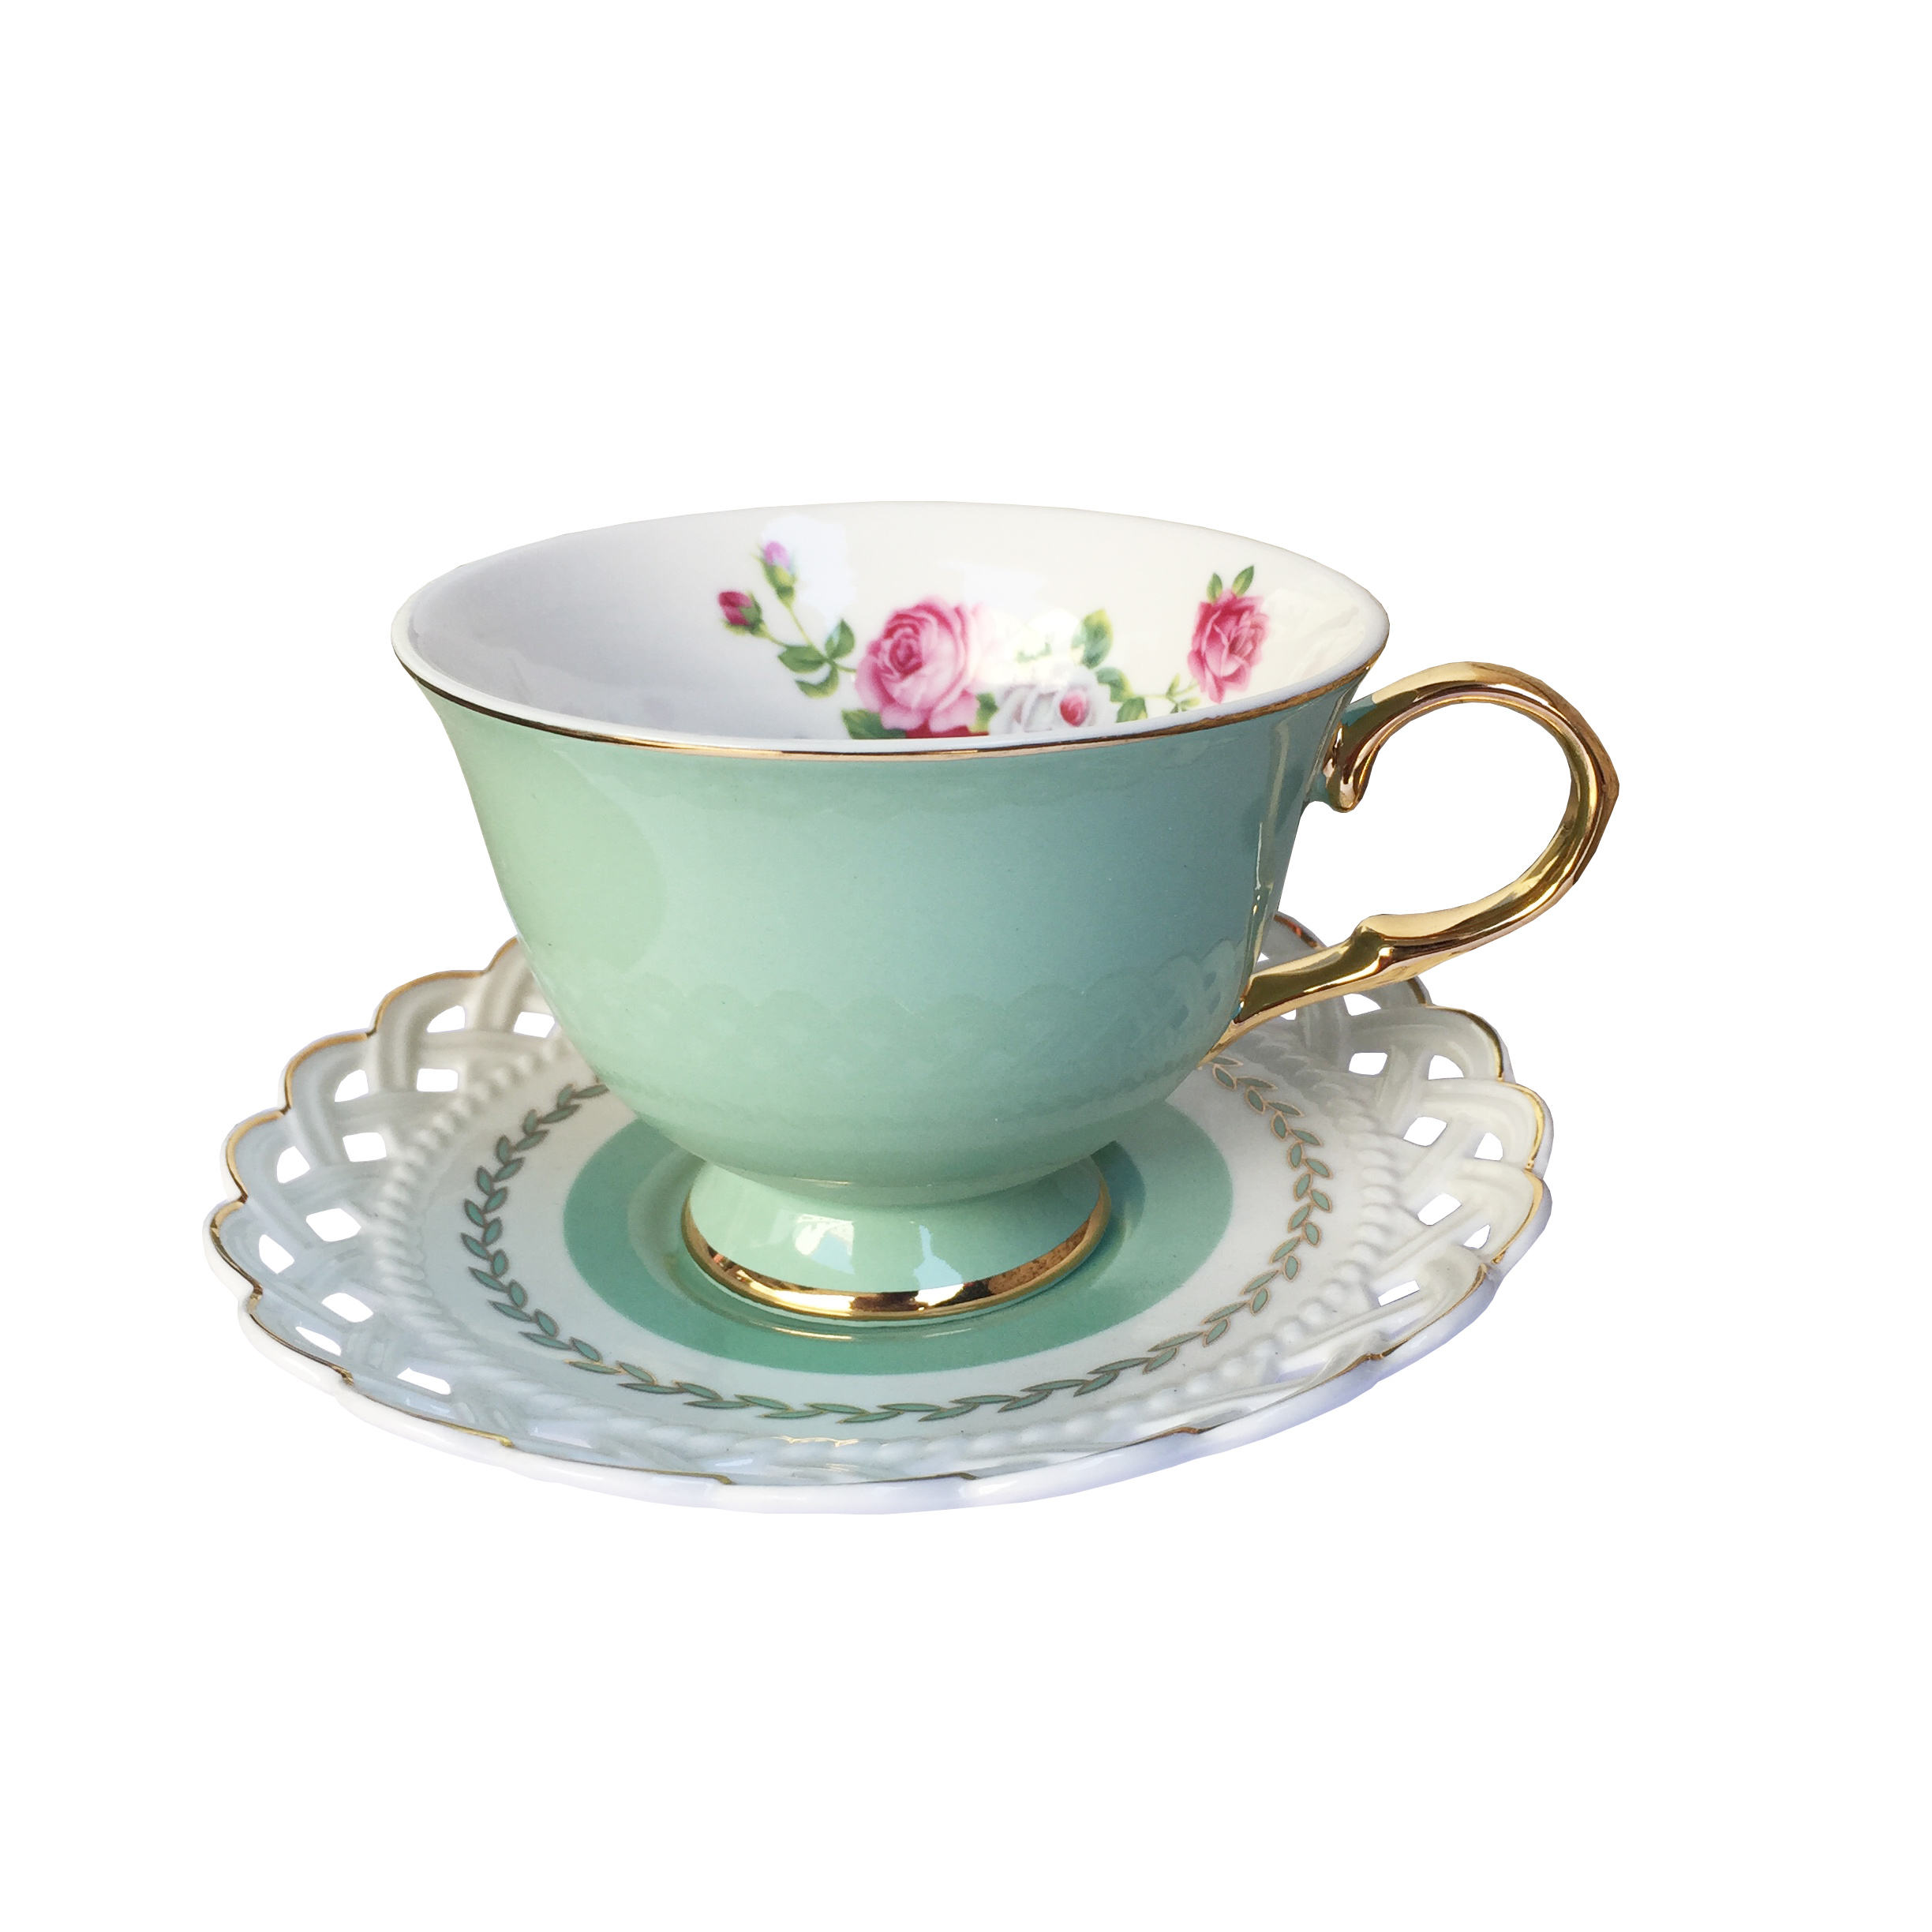 European style porcelain coffee cup and saucer reusable ceramic cafe cup saucer gift box